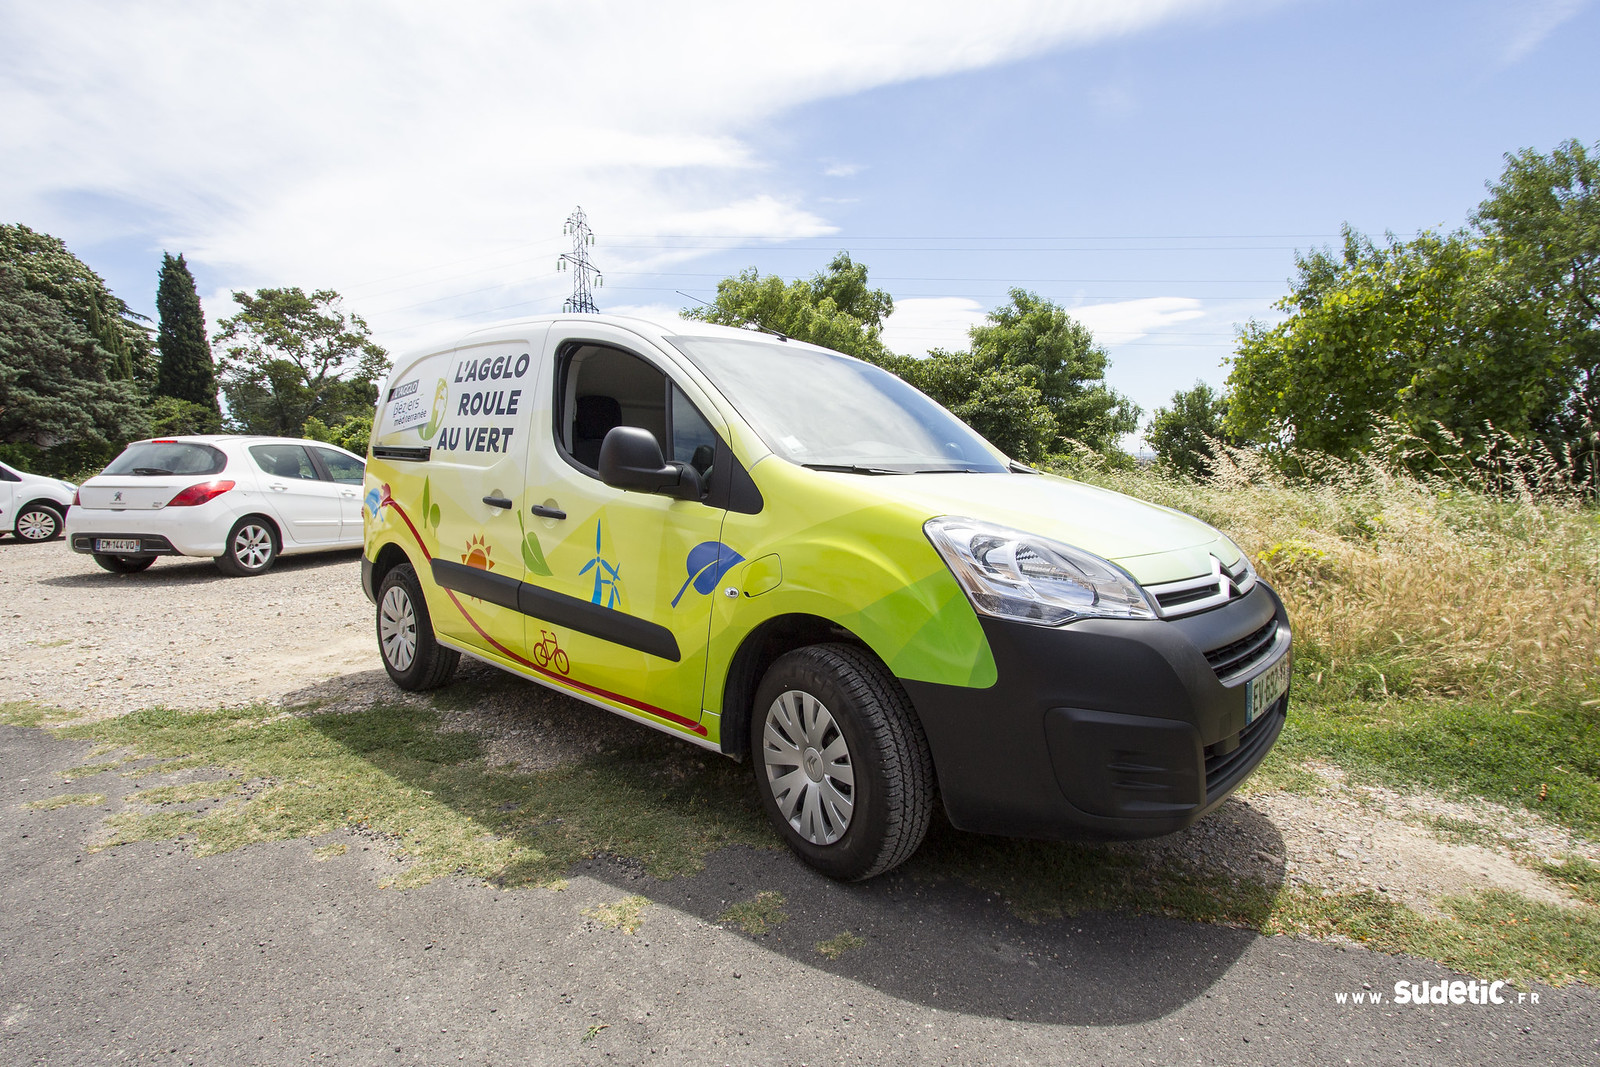 Sudetic total covering Citroen Berlingo Agglo Beziers Med-7